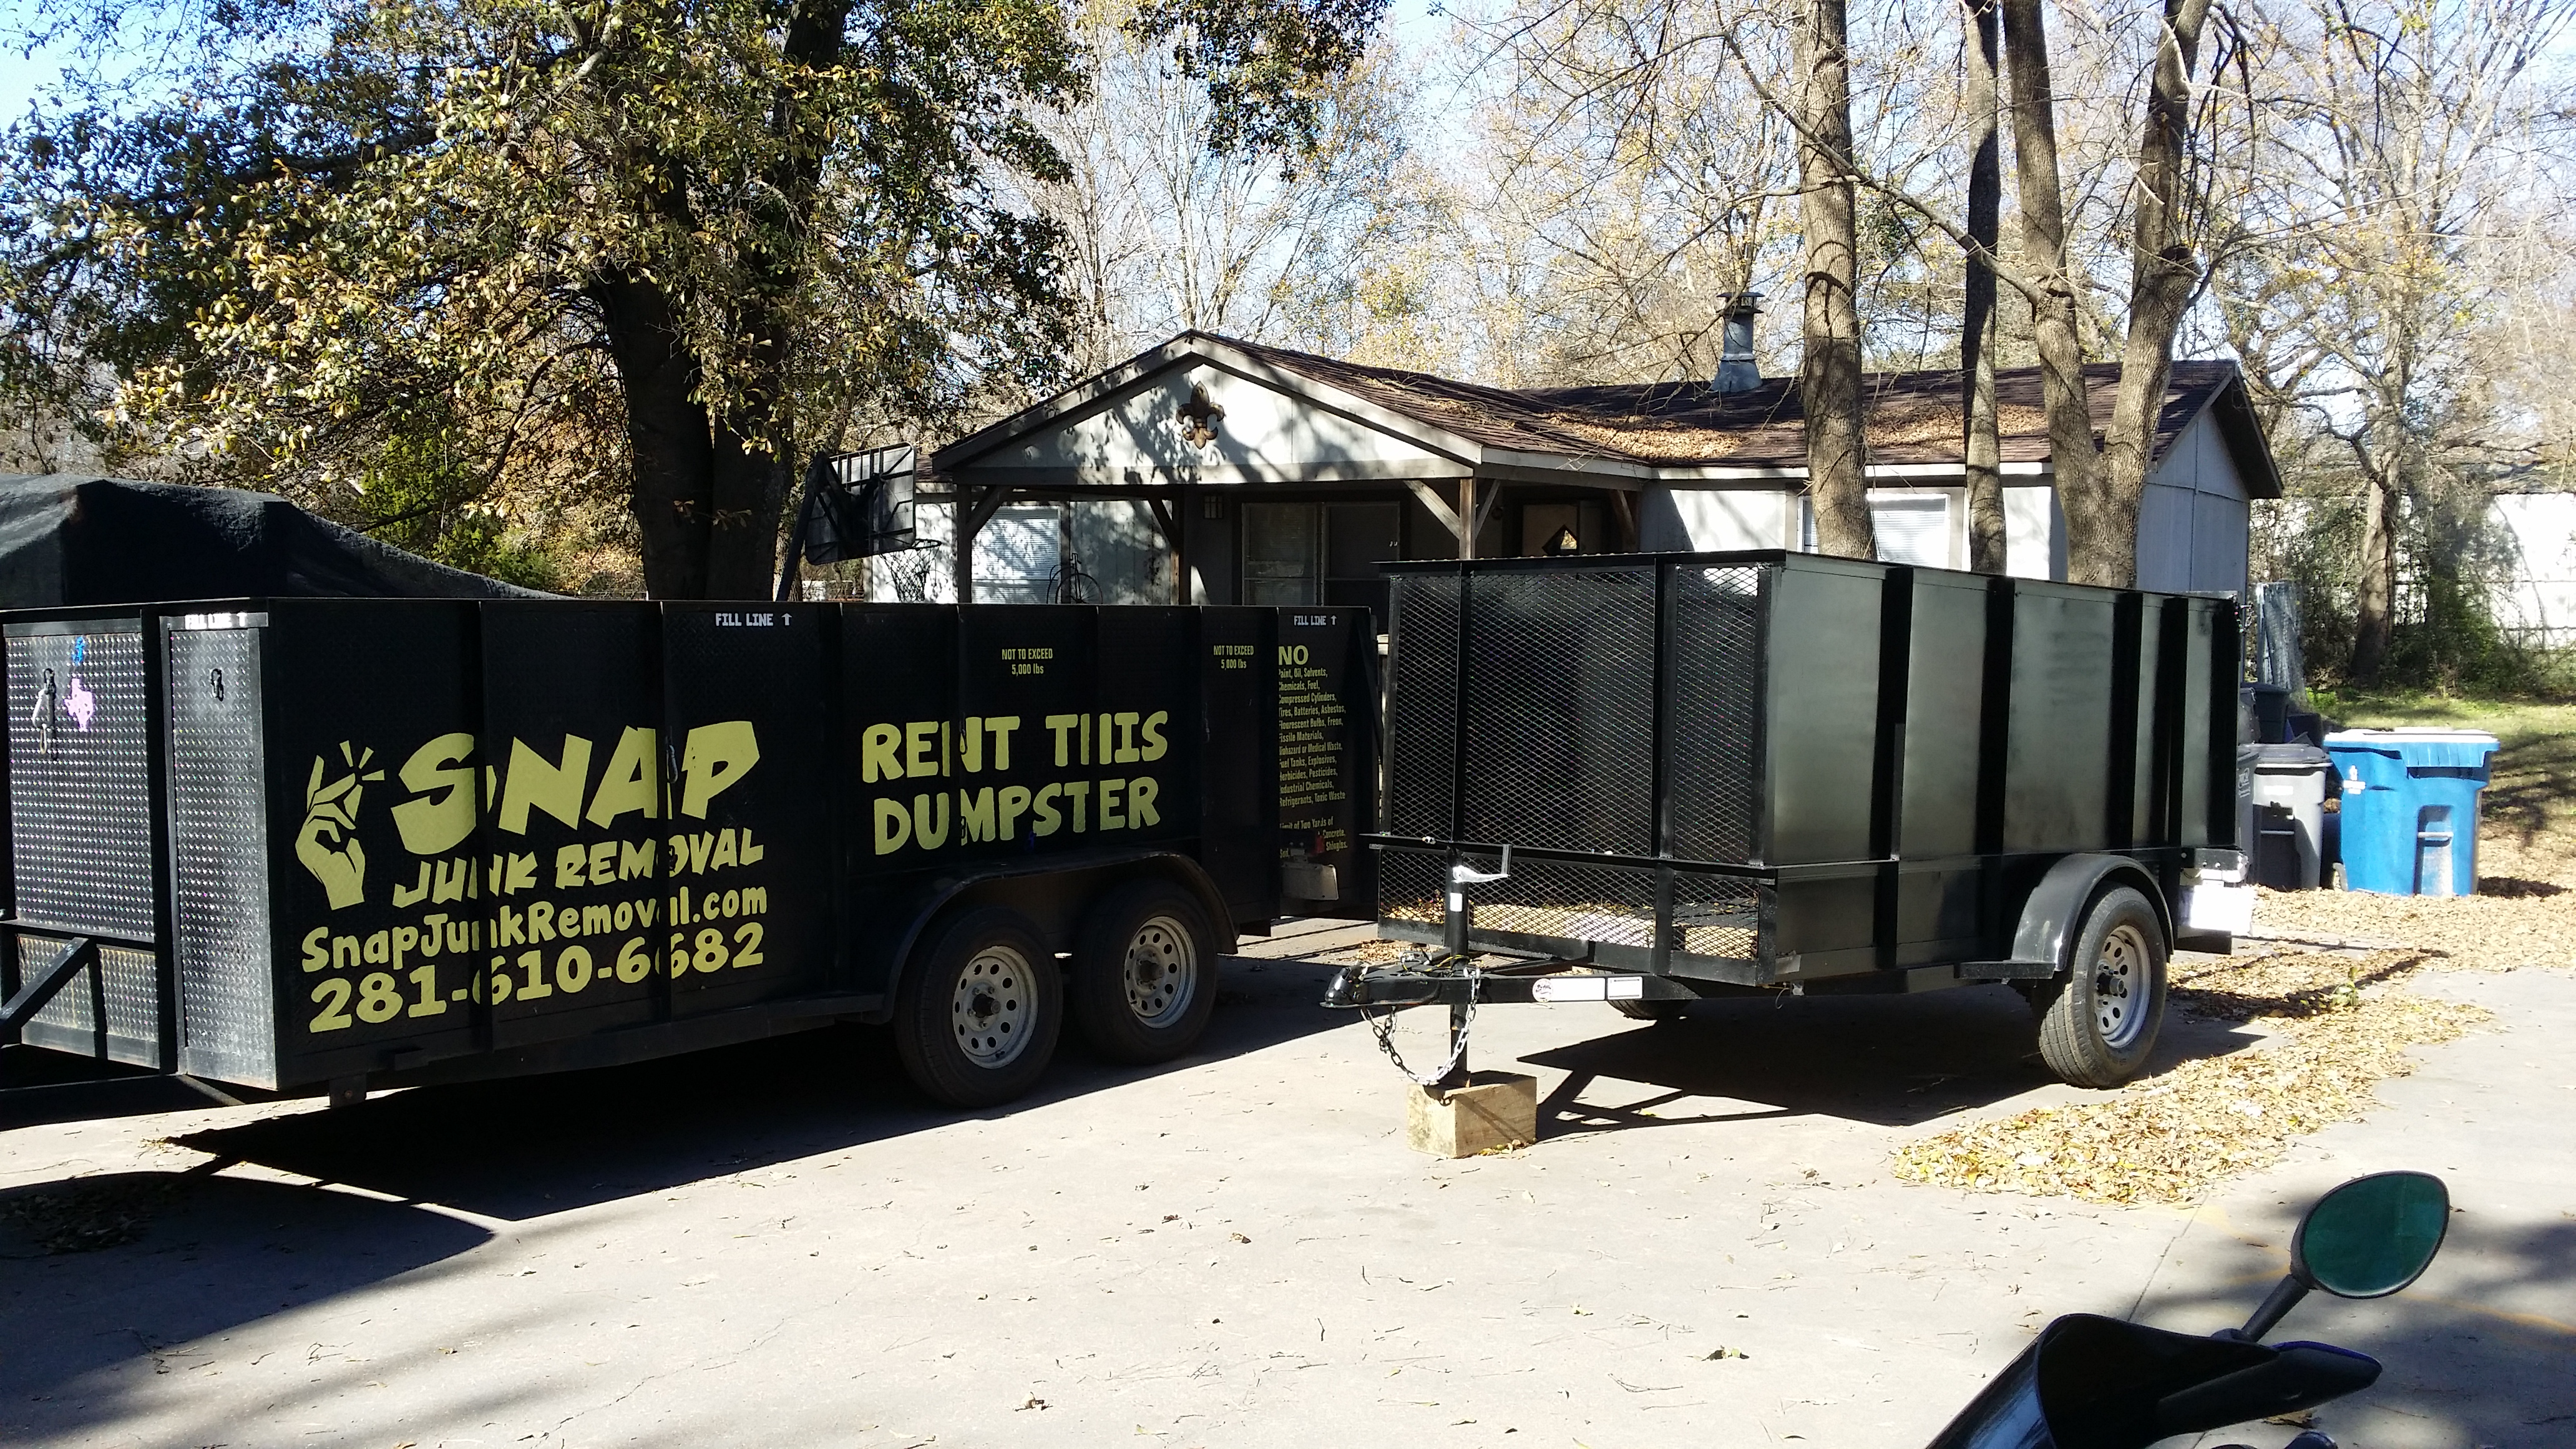 Dumpsters & Junk Removal Houston | Snap Junk Removal | 281-610-6682